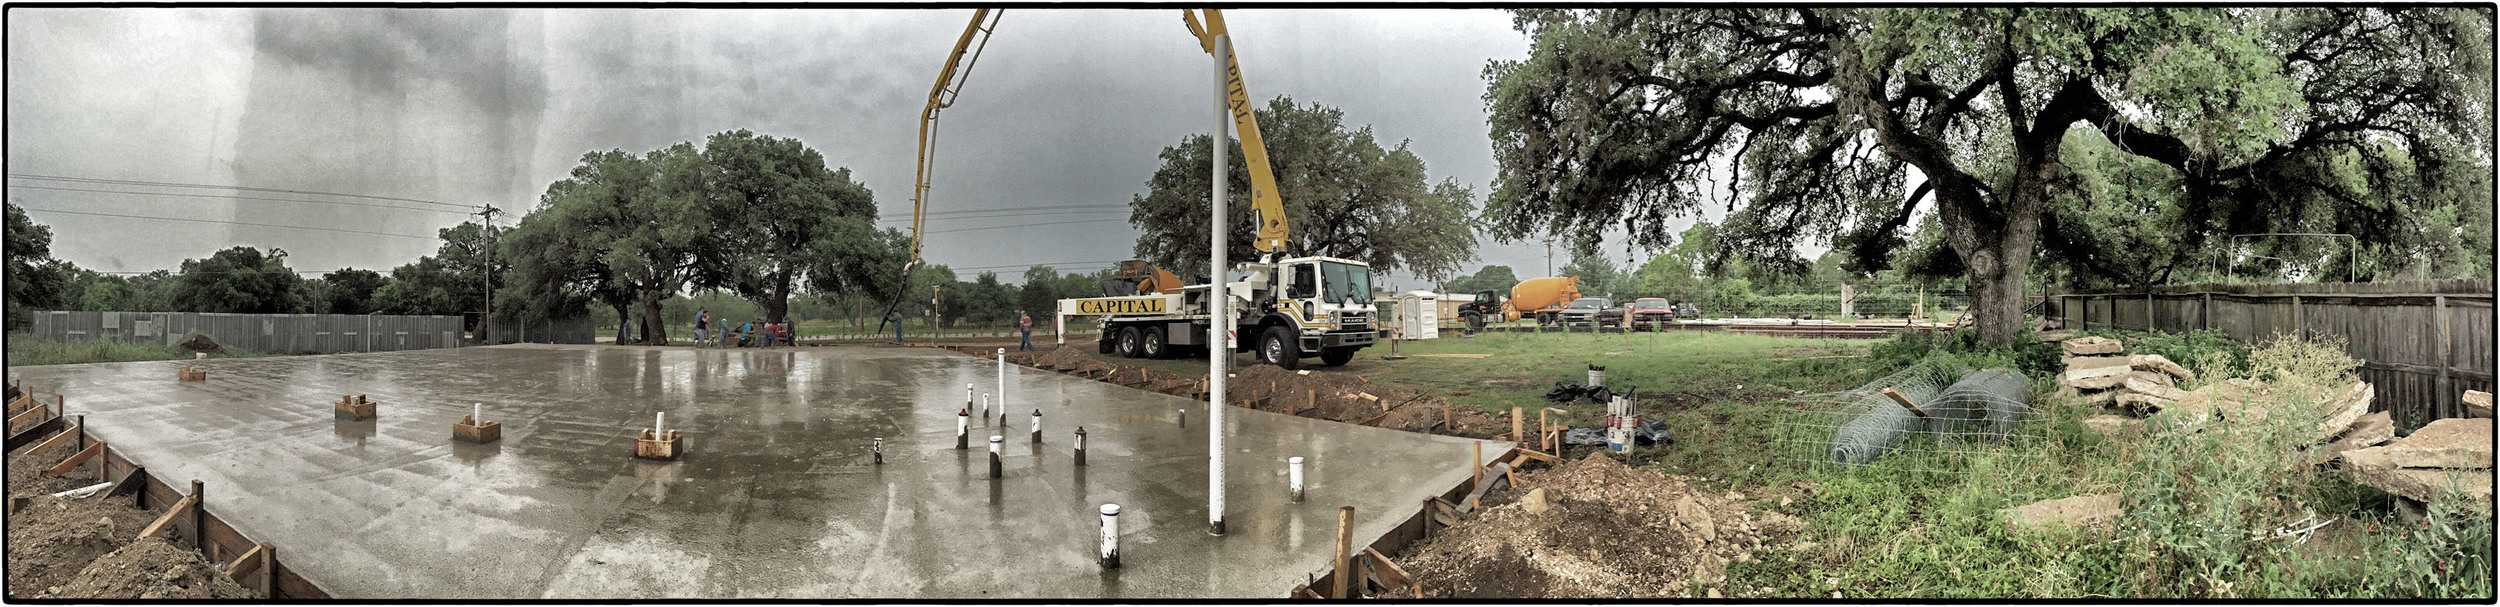 Huge progress at 290Vinery on Saturday June 20th.  Poncho and Warren ROCKED IT! S lab poured June 20th in the rain - over 4k sq ft of concrete!